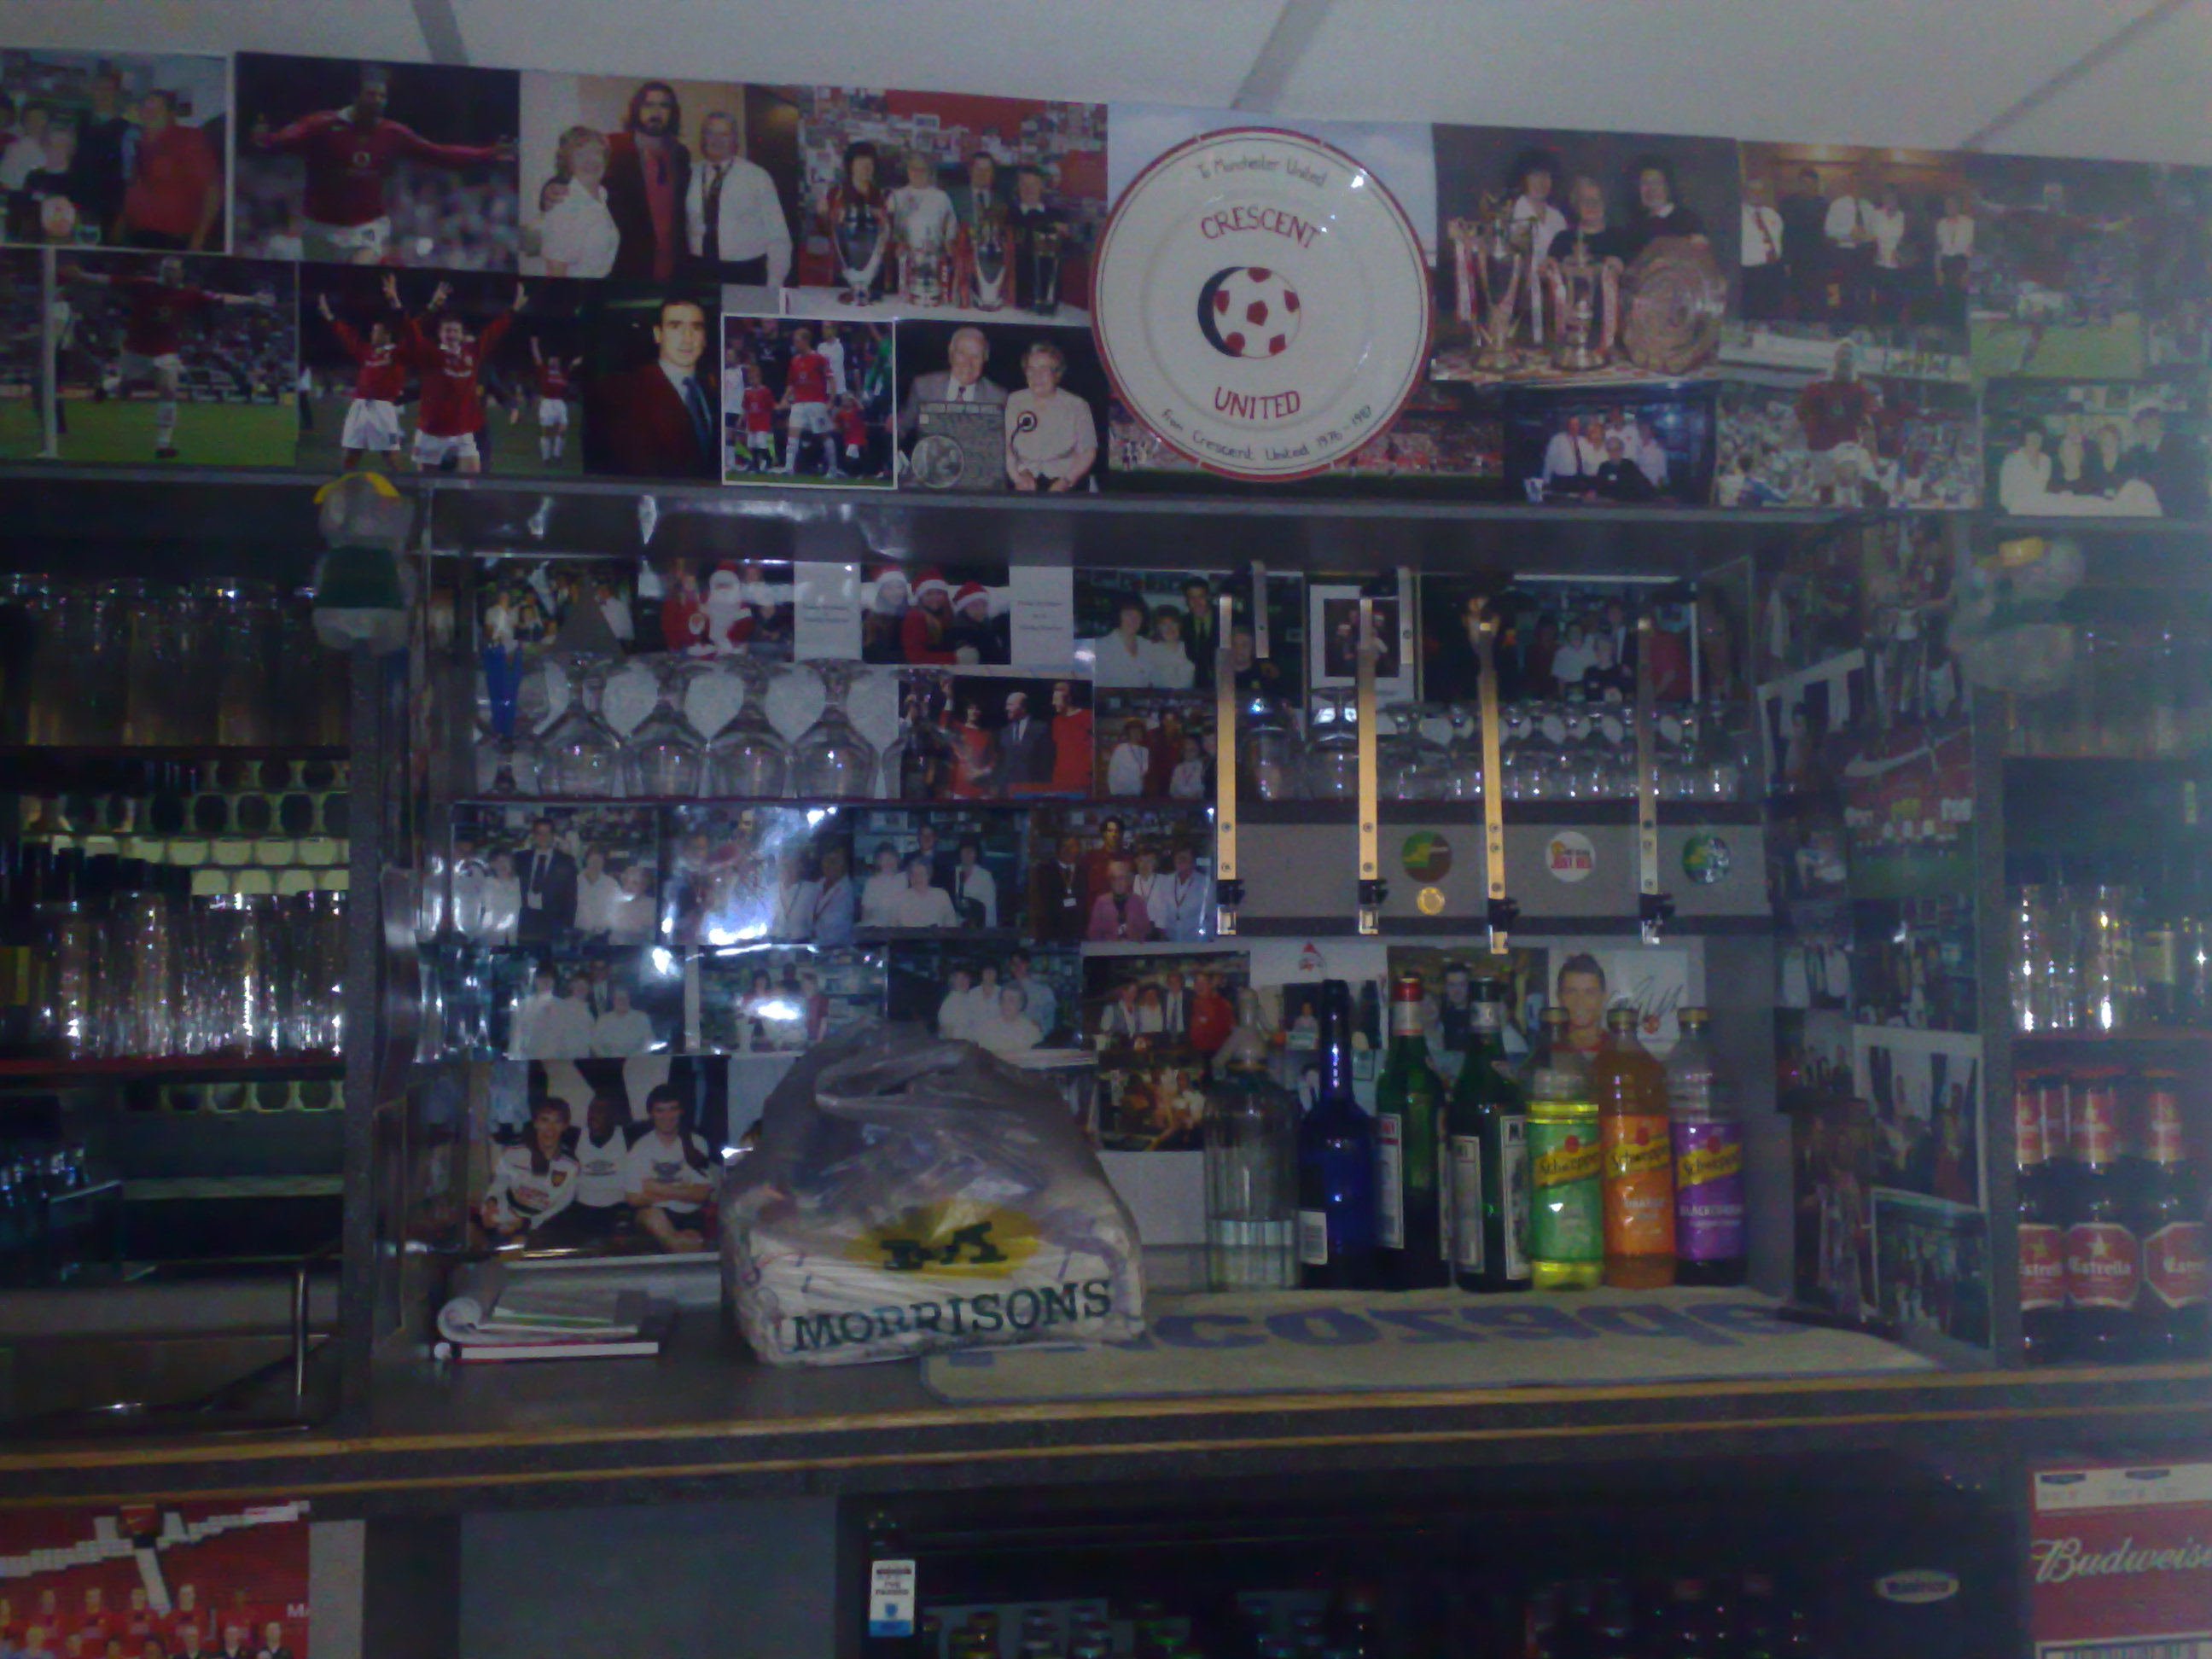 PICTURES: Manchester United Players' Lounge Bar At OT